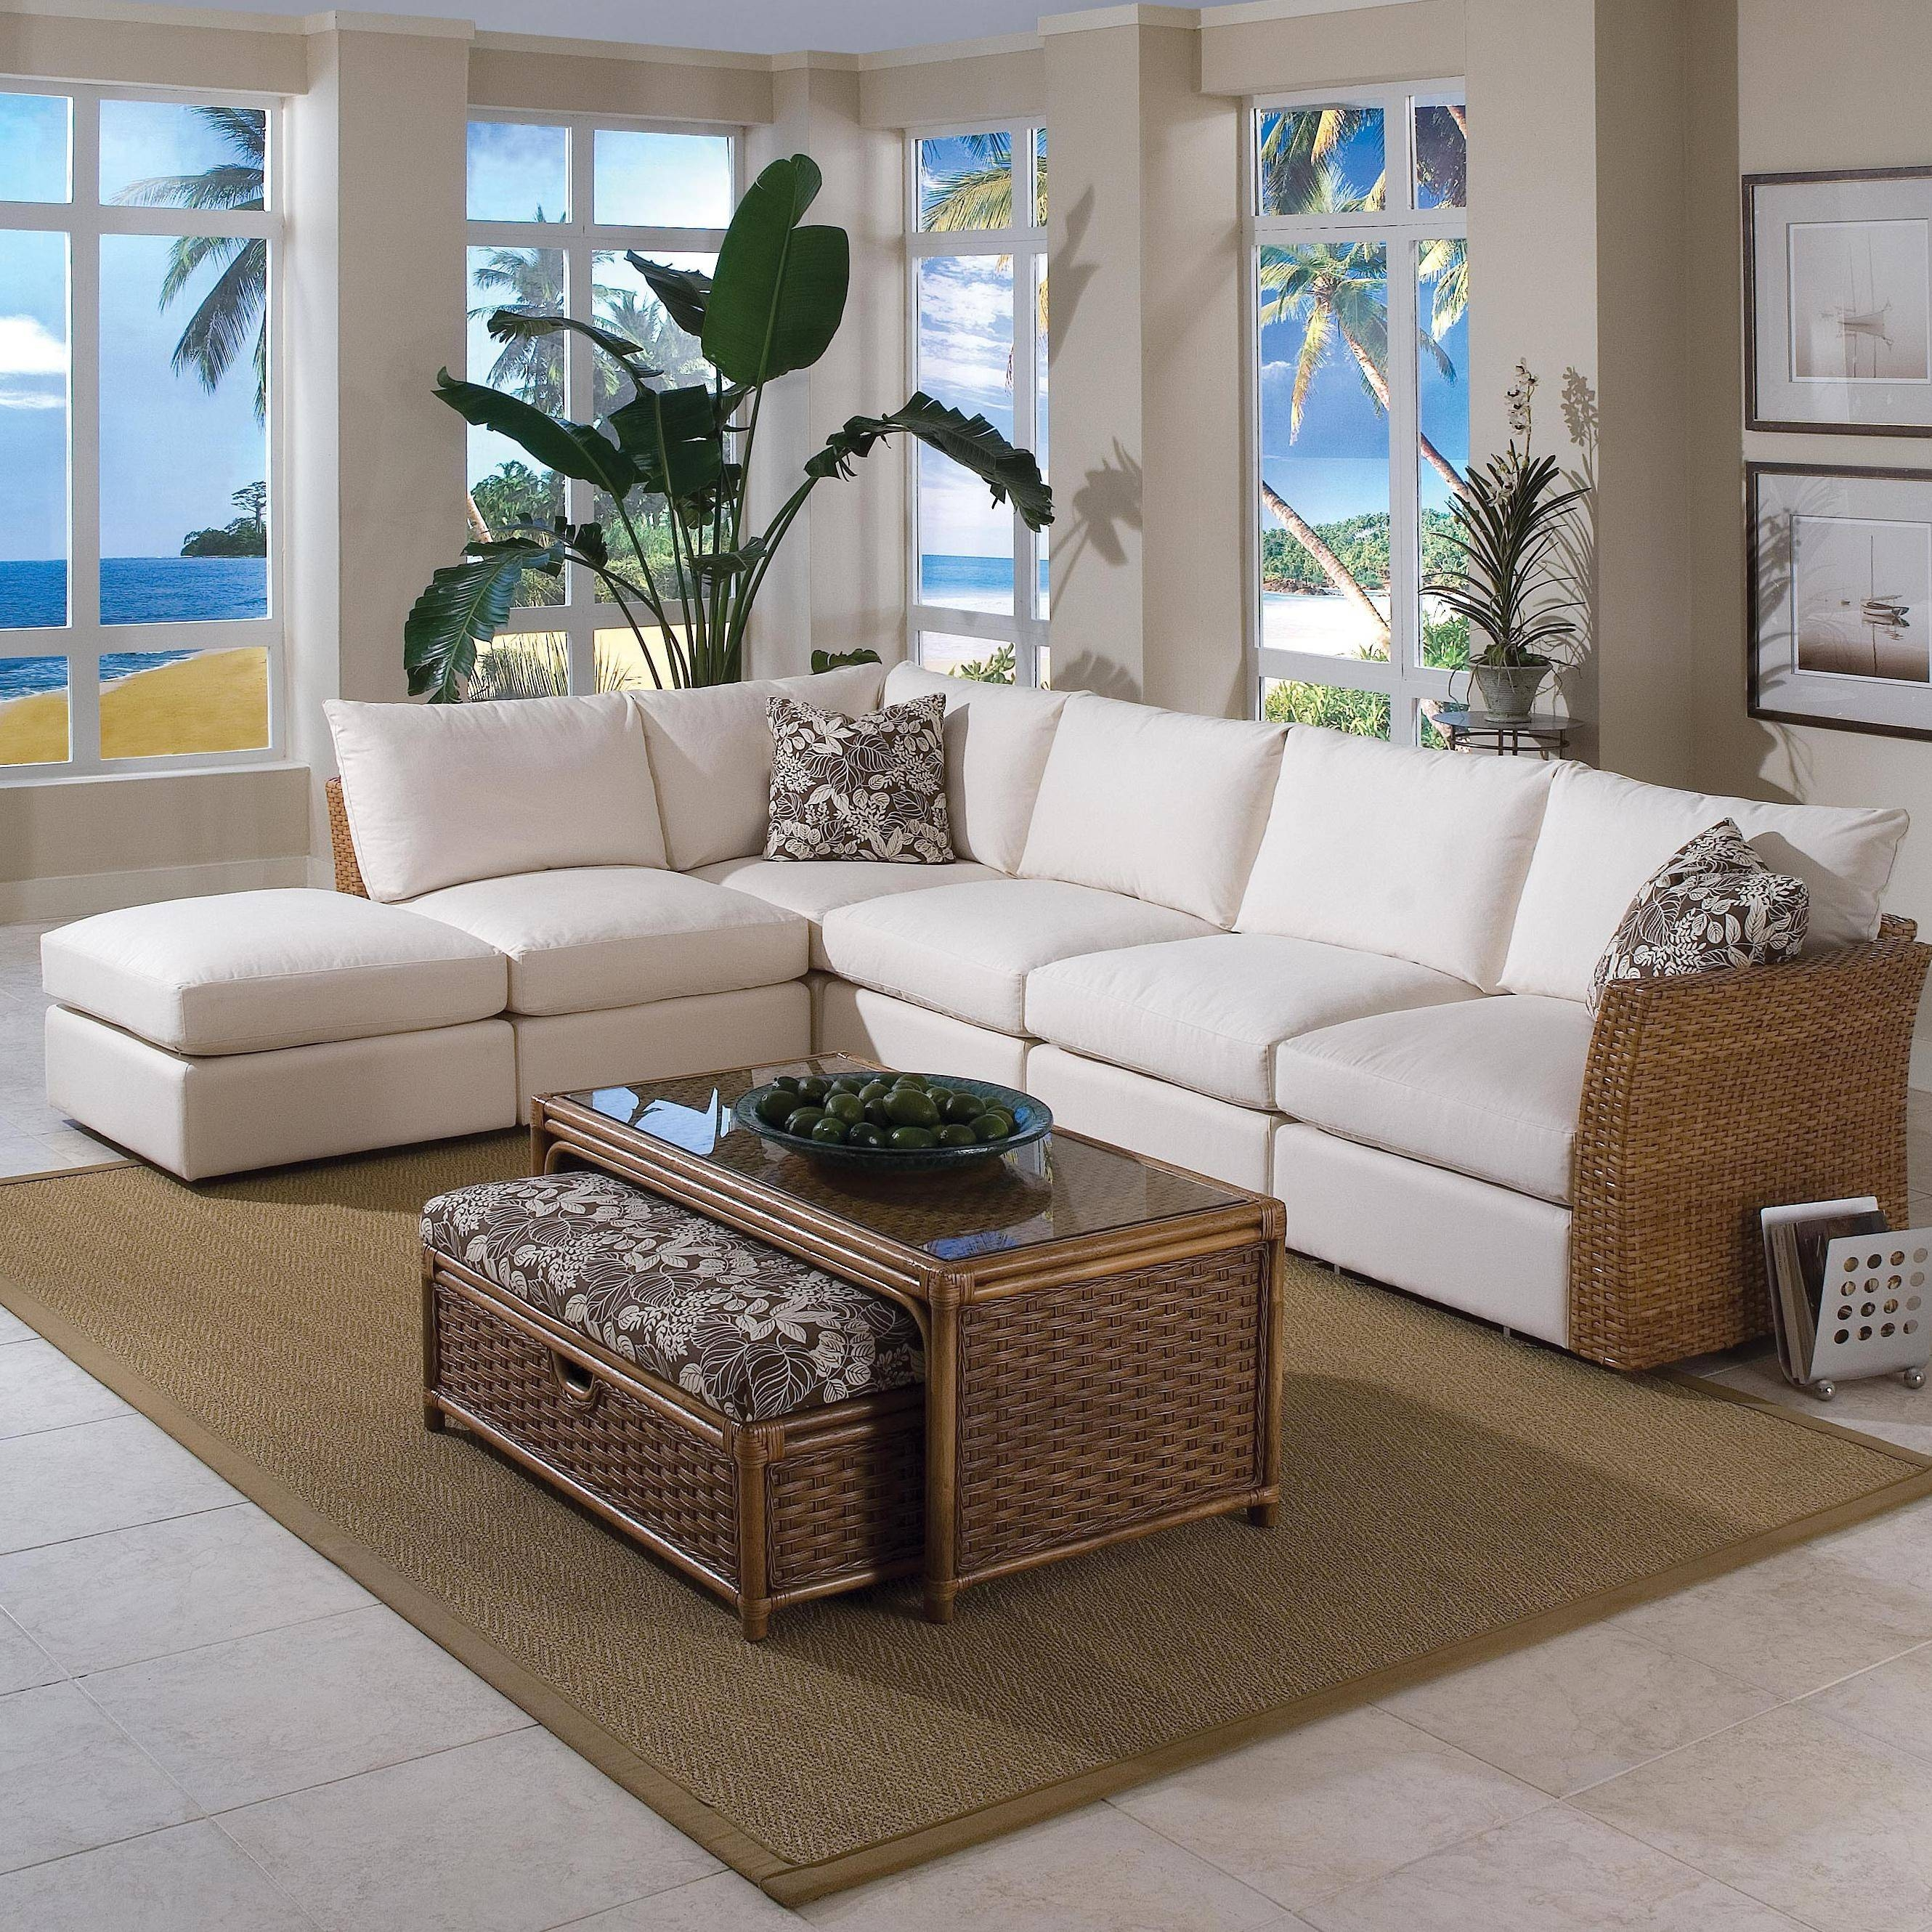 12 Best Of Braxton Sectional Sofa throughout Braxton Sofa (Image 1 of 30)